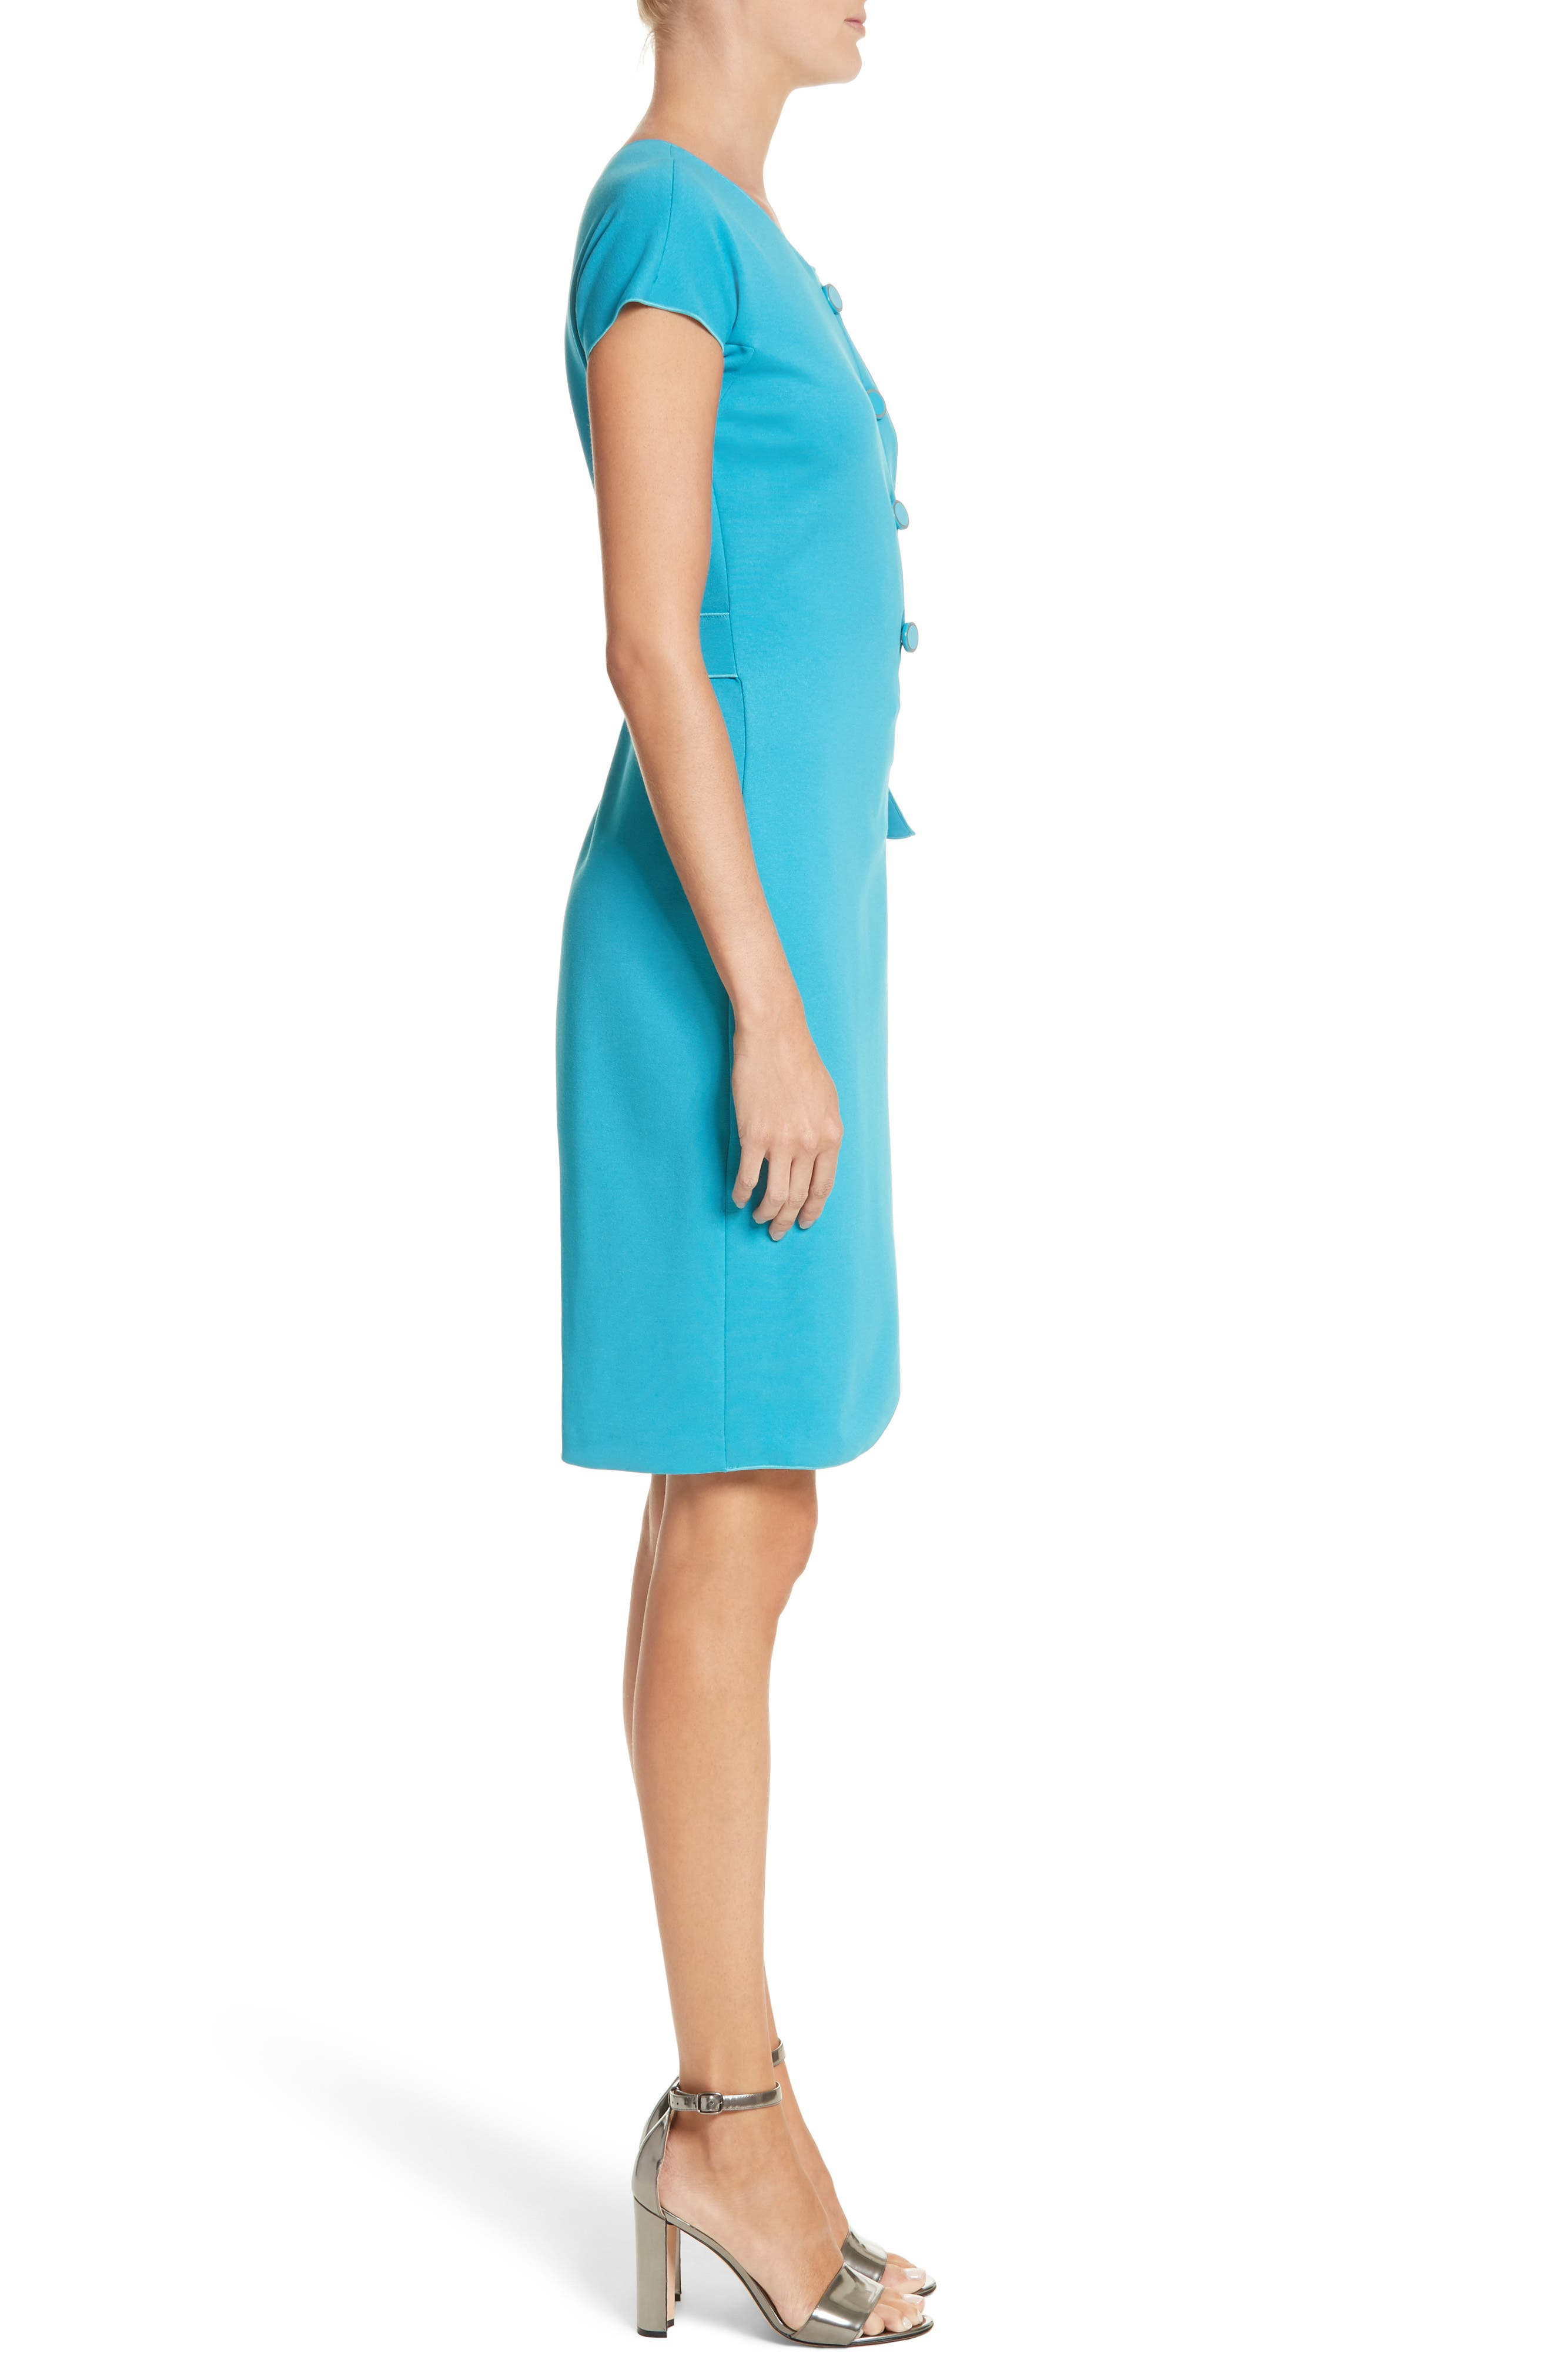 Knotted Wrap Skirt Dress,                             Alternate thumbnail 3, color,                             Solid Turquoise/ Aqua